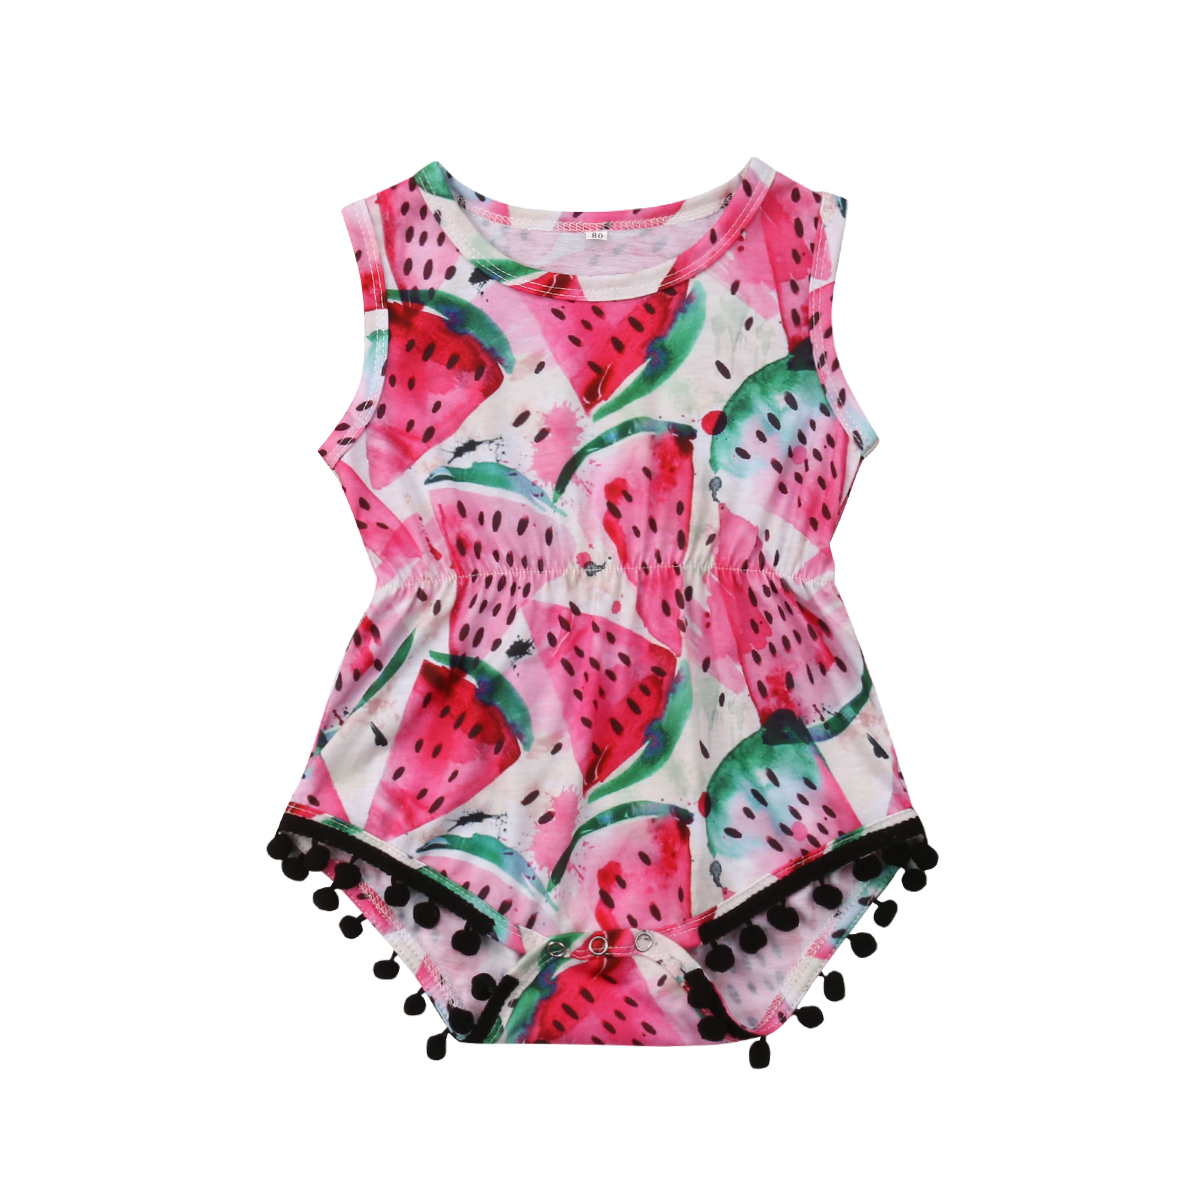 Newborn Infant Kid Baby Girl Watermelon Print   Romper   Sleeveless Tassel Jumpsuit Outfit Clothes Set